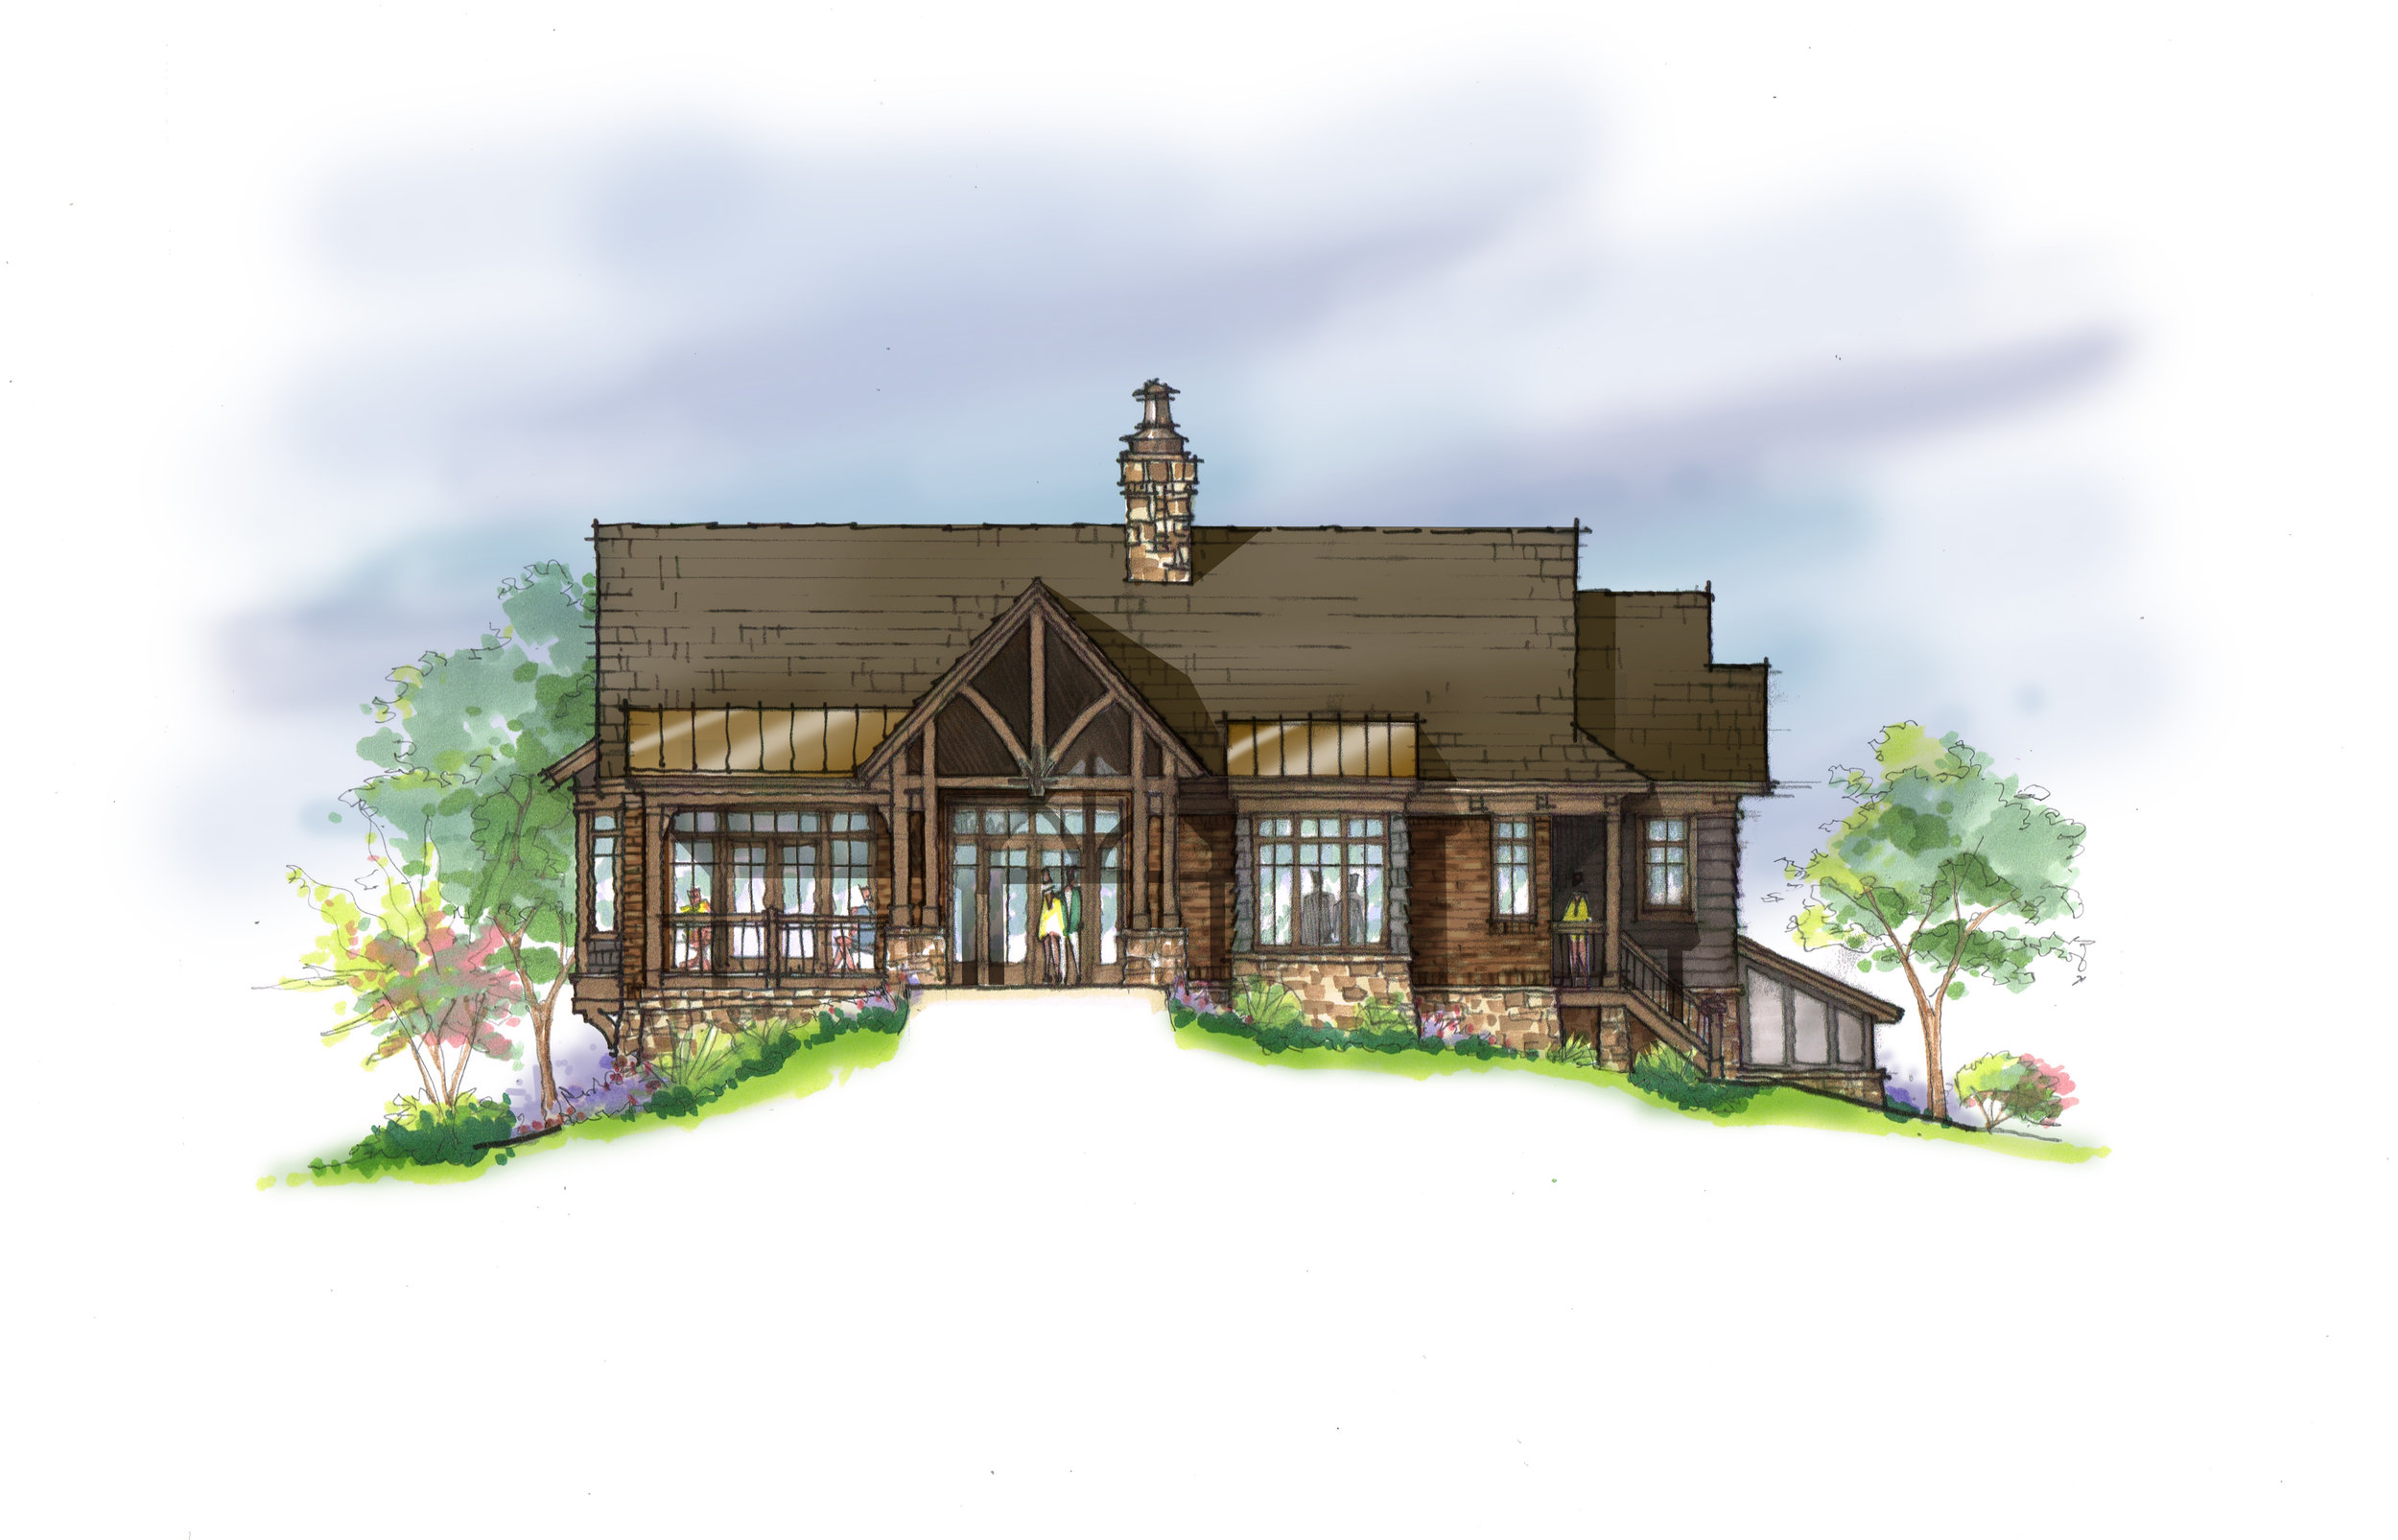 Scenic Falls Clubhouse Colored Rendering 7-15-17.jpg